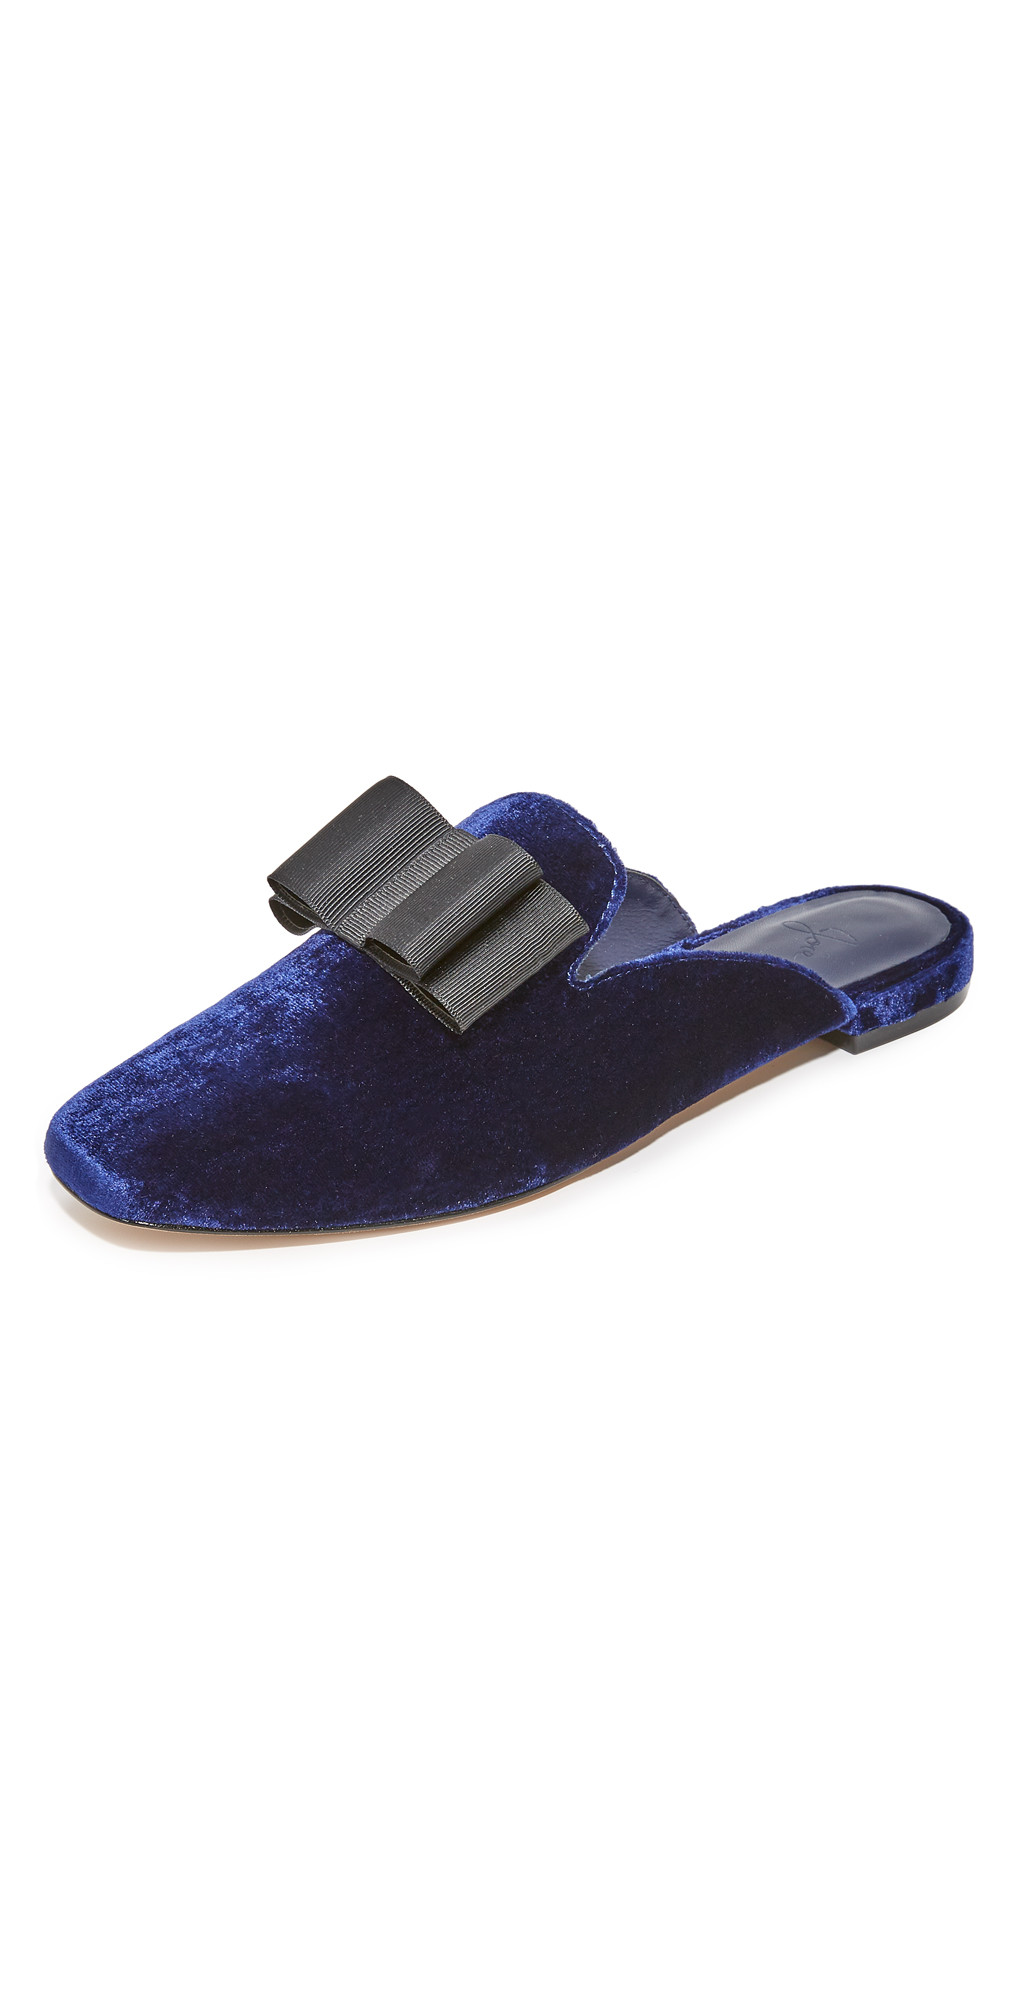 Jean Bow Mules Joie